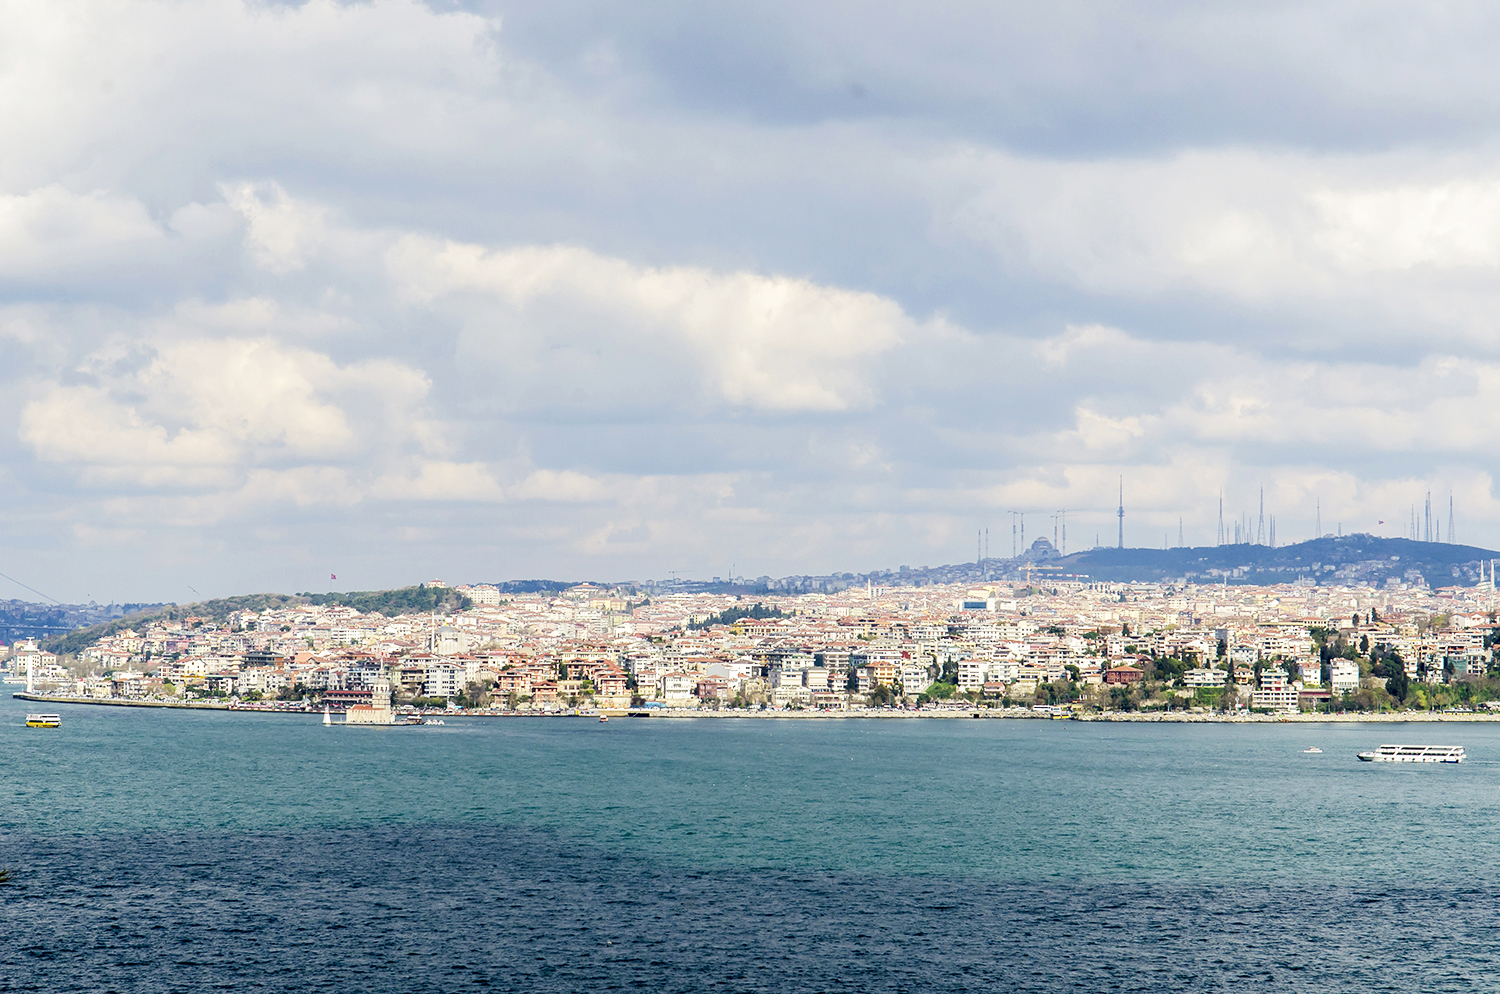 A view of the Bosphorus as seen from the Harem.